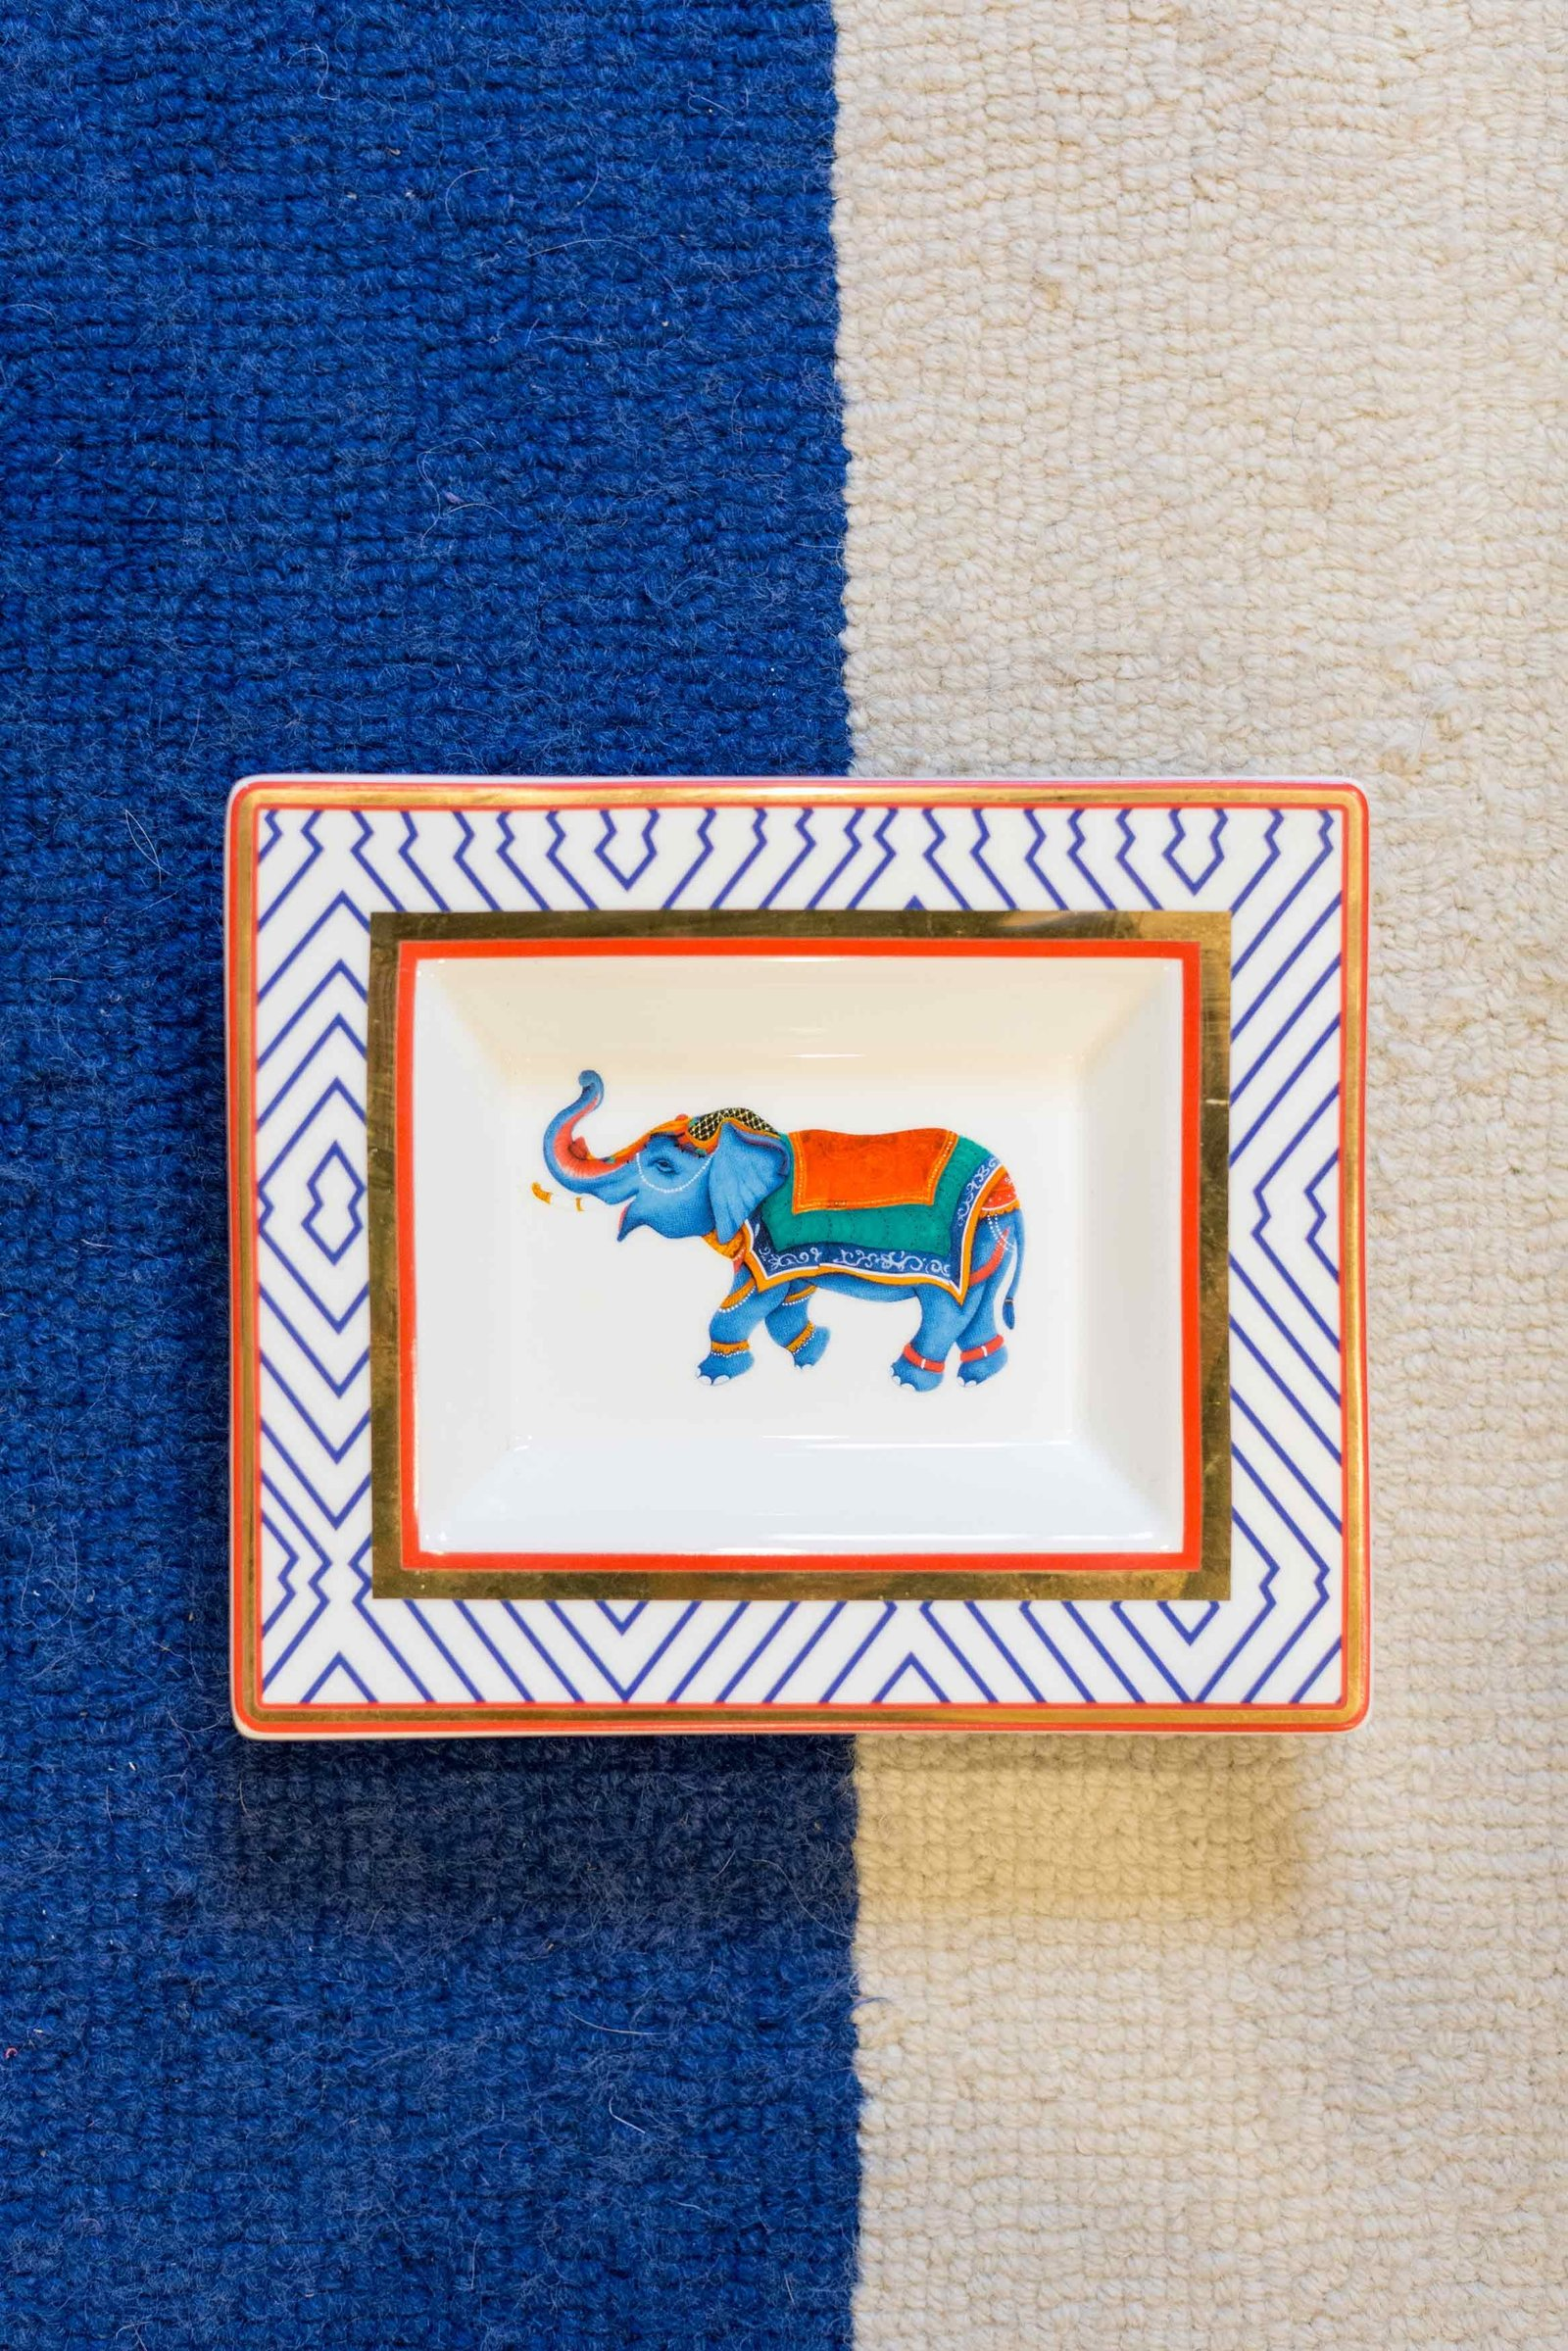 A ceramic dish with an elephant on top of a blue and white rug.